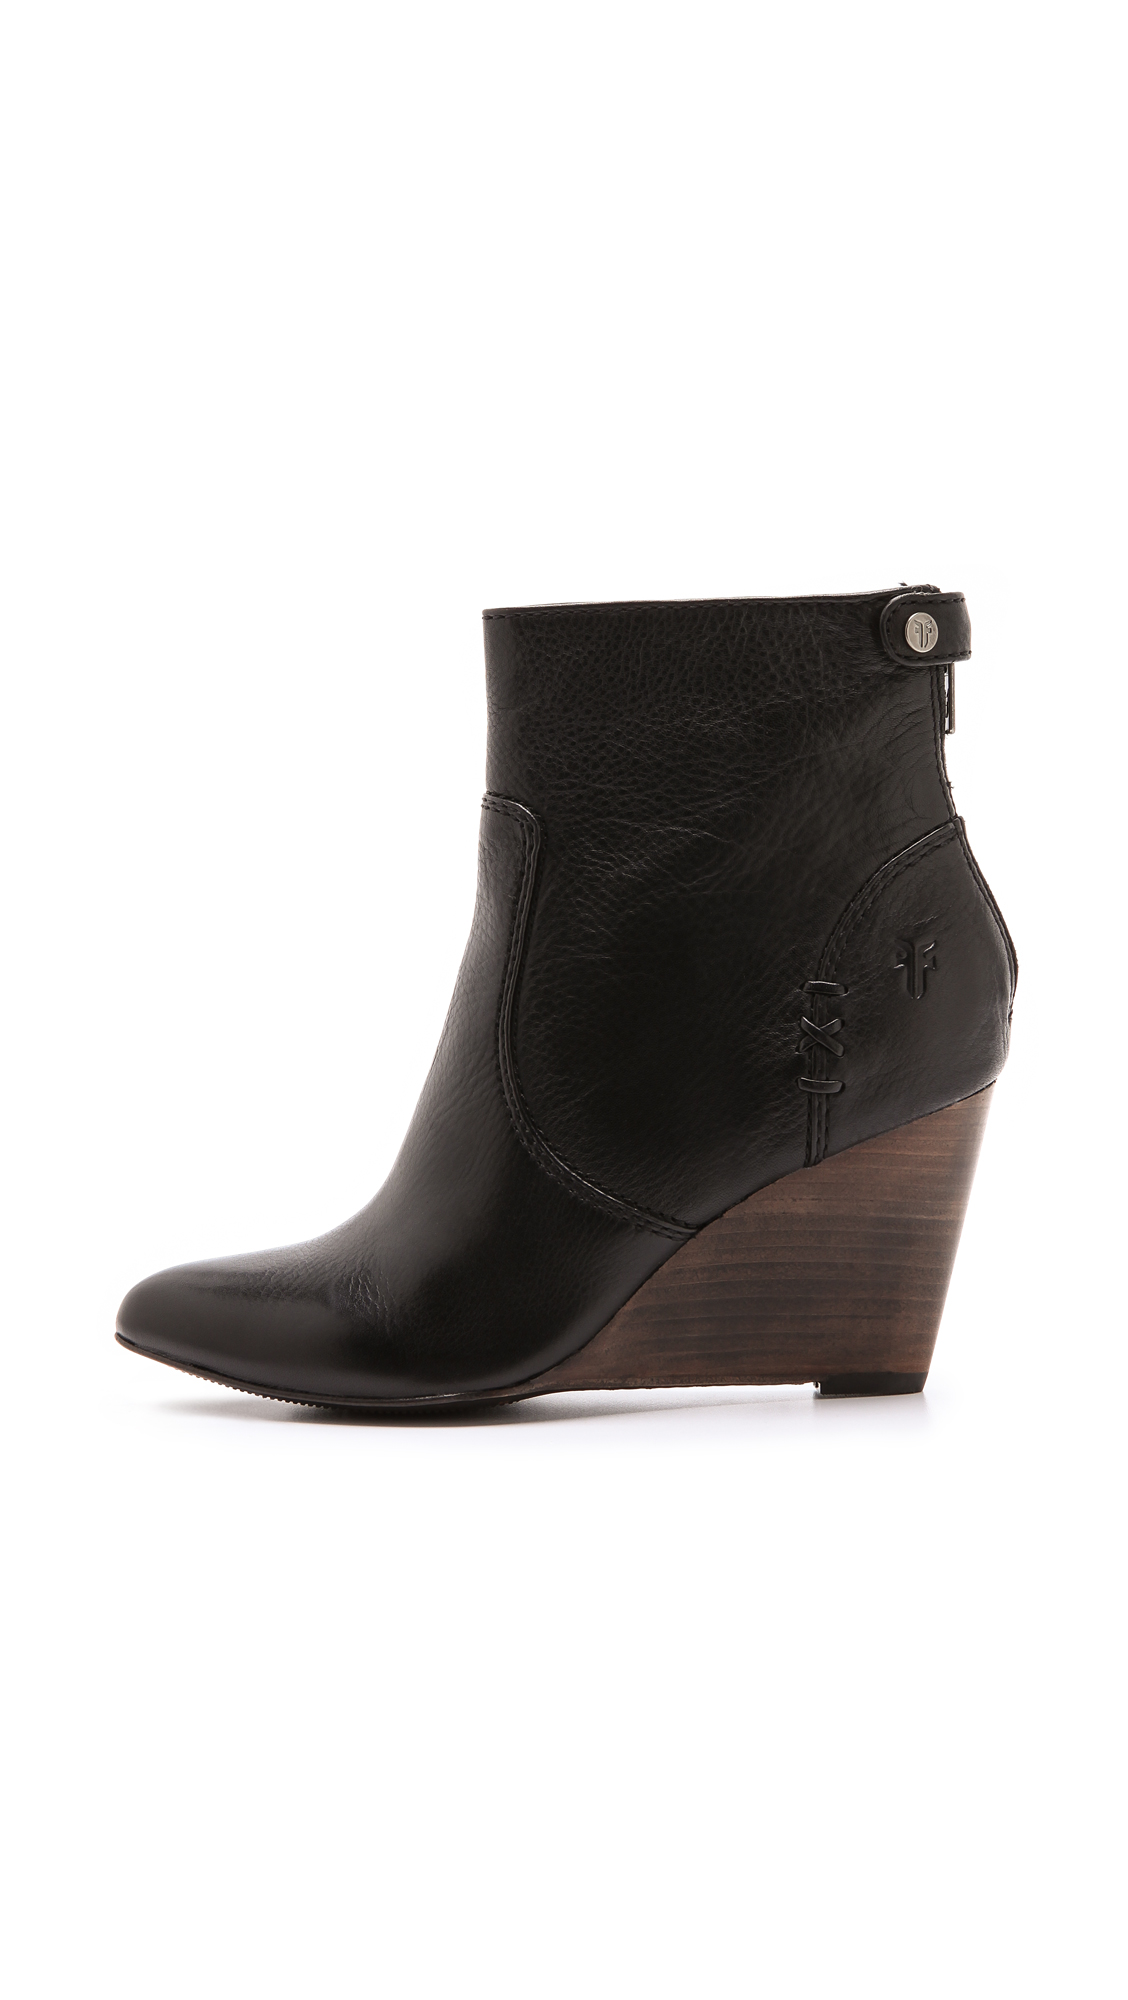 95da1407cf1 Frye Regina Wedge Booties